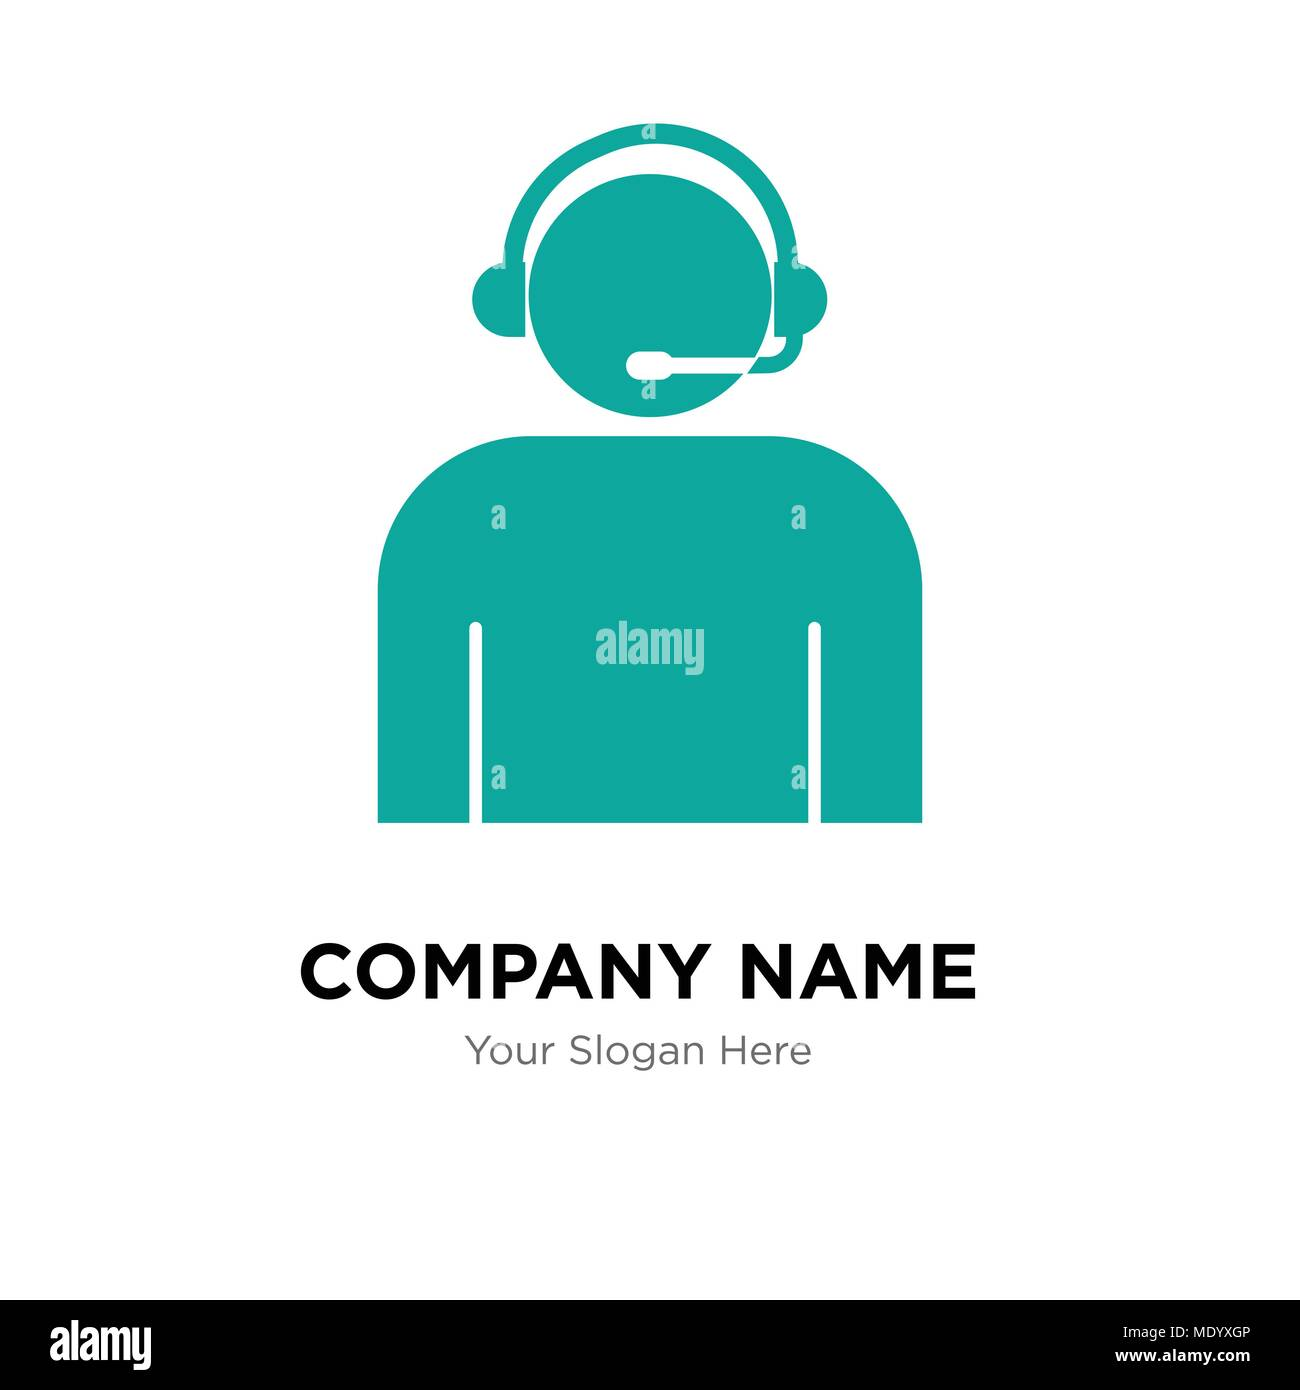 call center worker with headset company logo design template business corporate vector icon stock vector image art alamy https www alamy com call center worker with headset company logo design template business corporate vector icon image180707766 html